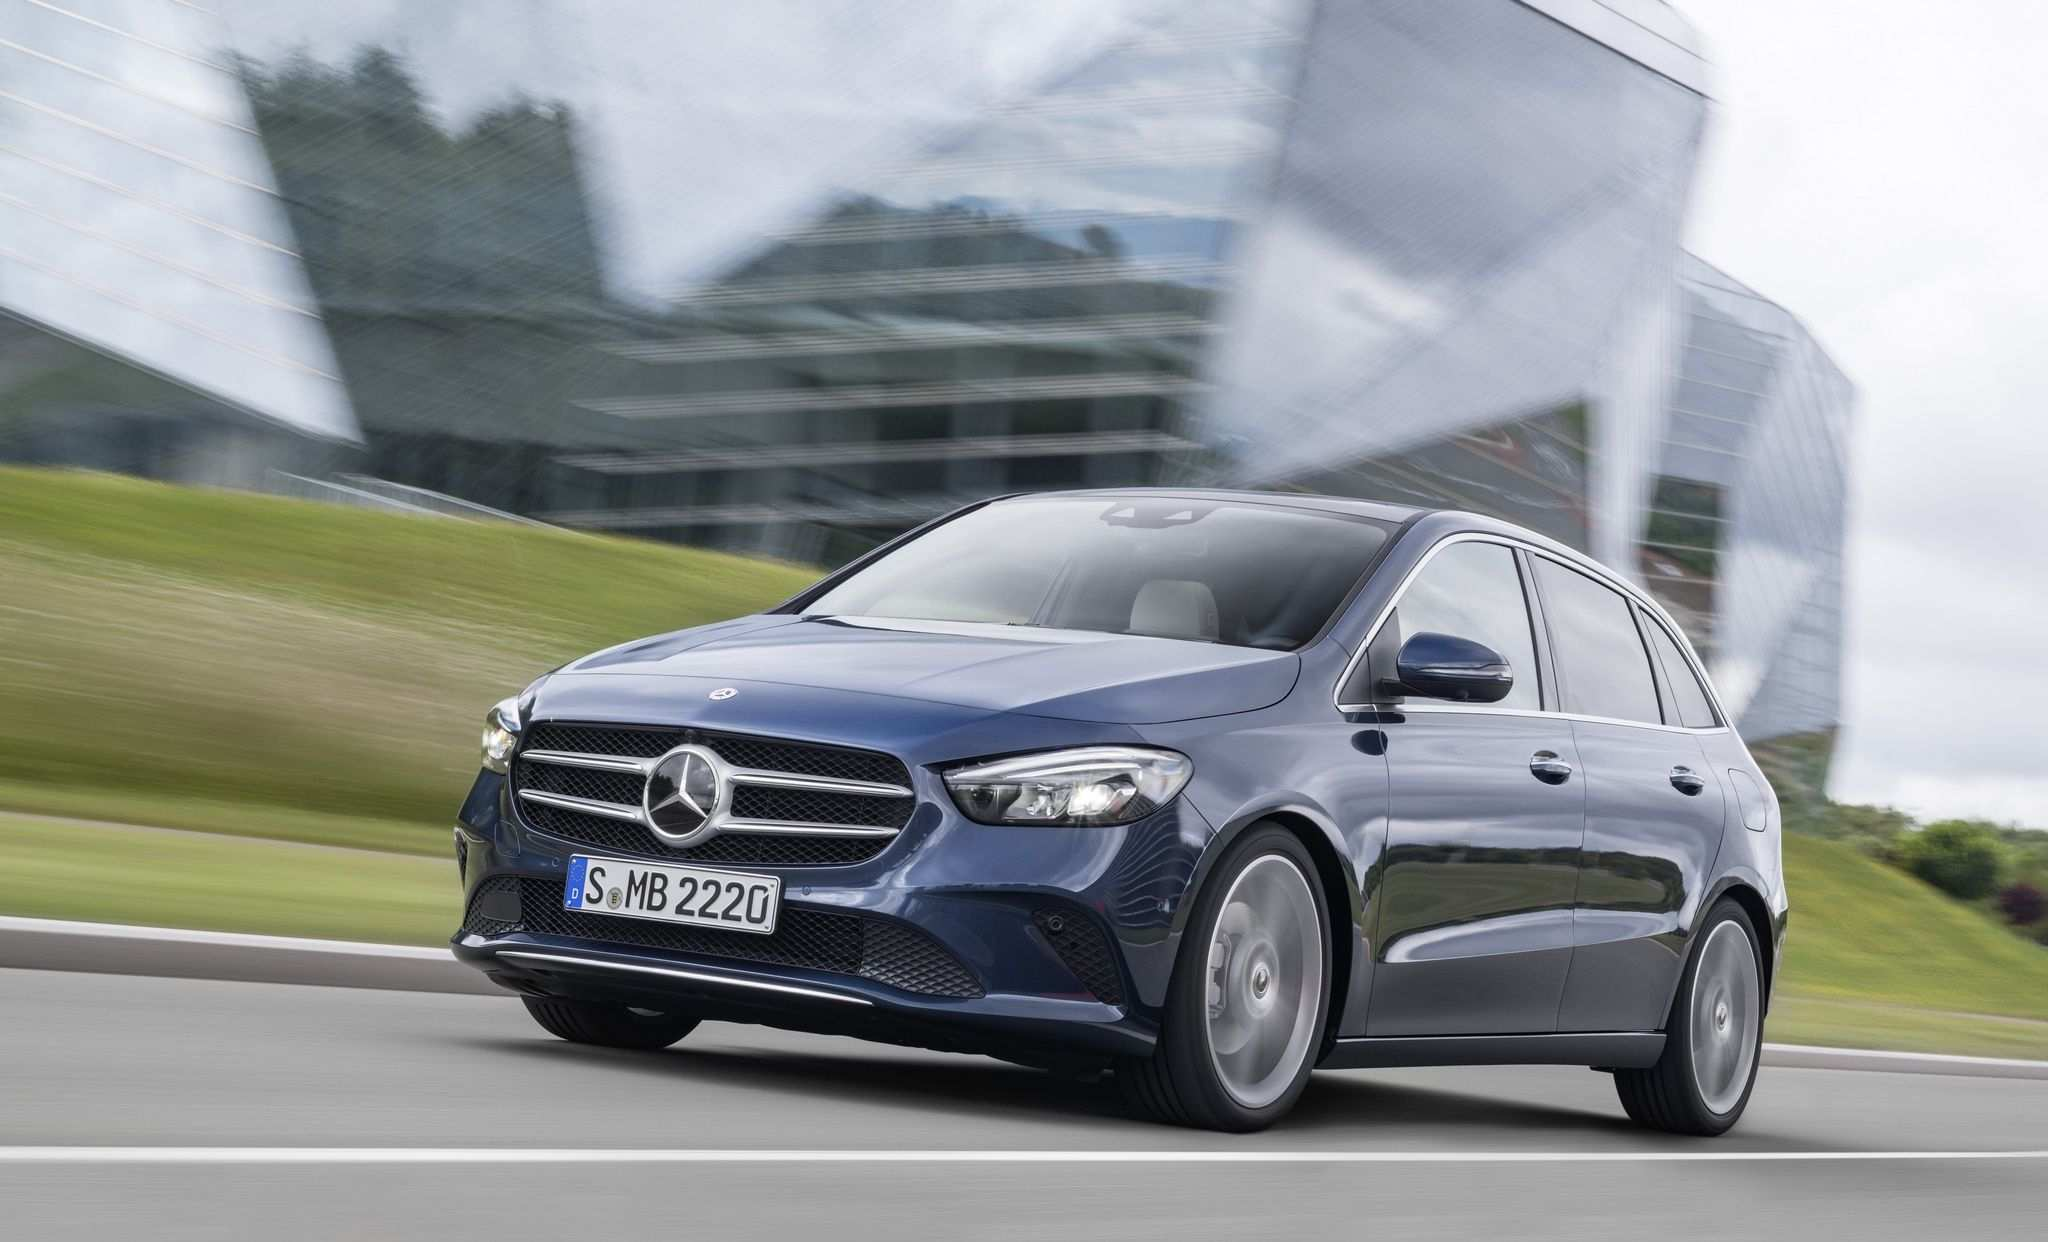 62 Best Review Best Mercedes Benz B Klasse 2019 Interior Exterior And Review Engine with Best Mercedes Benz B Klasse 2019 Interior Exterior And Review